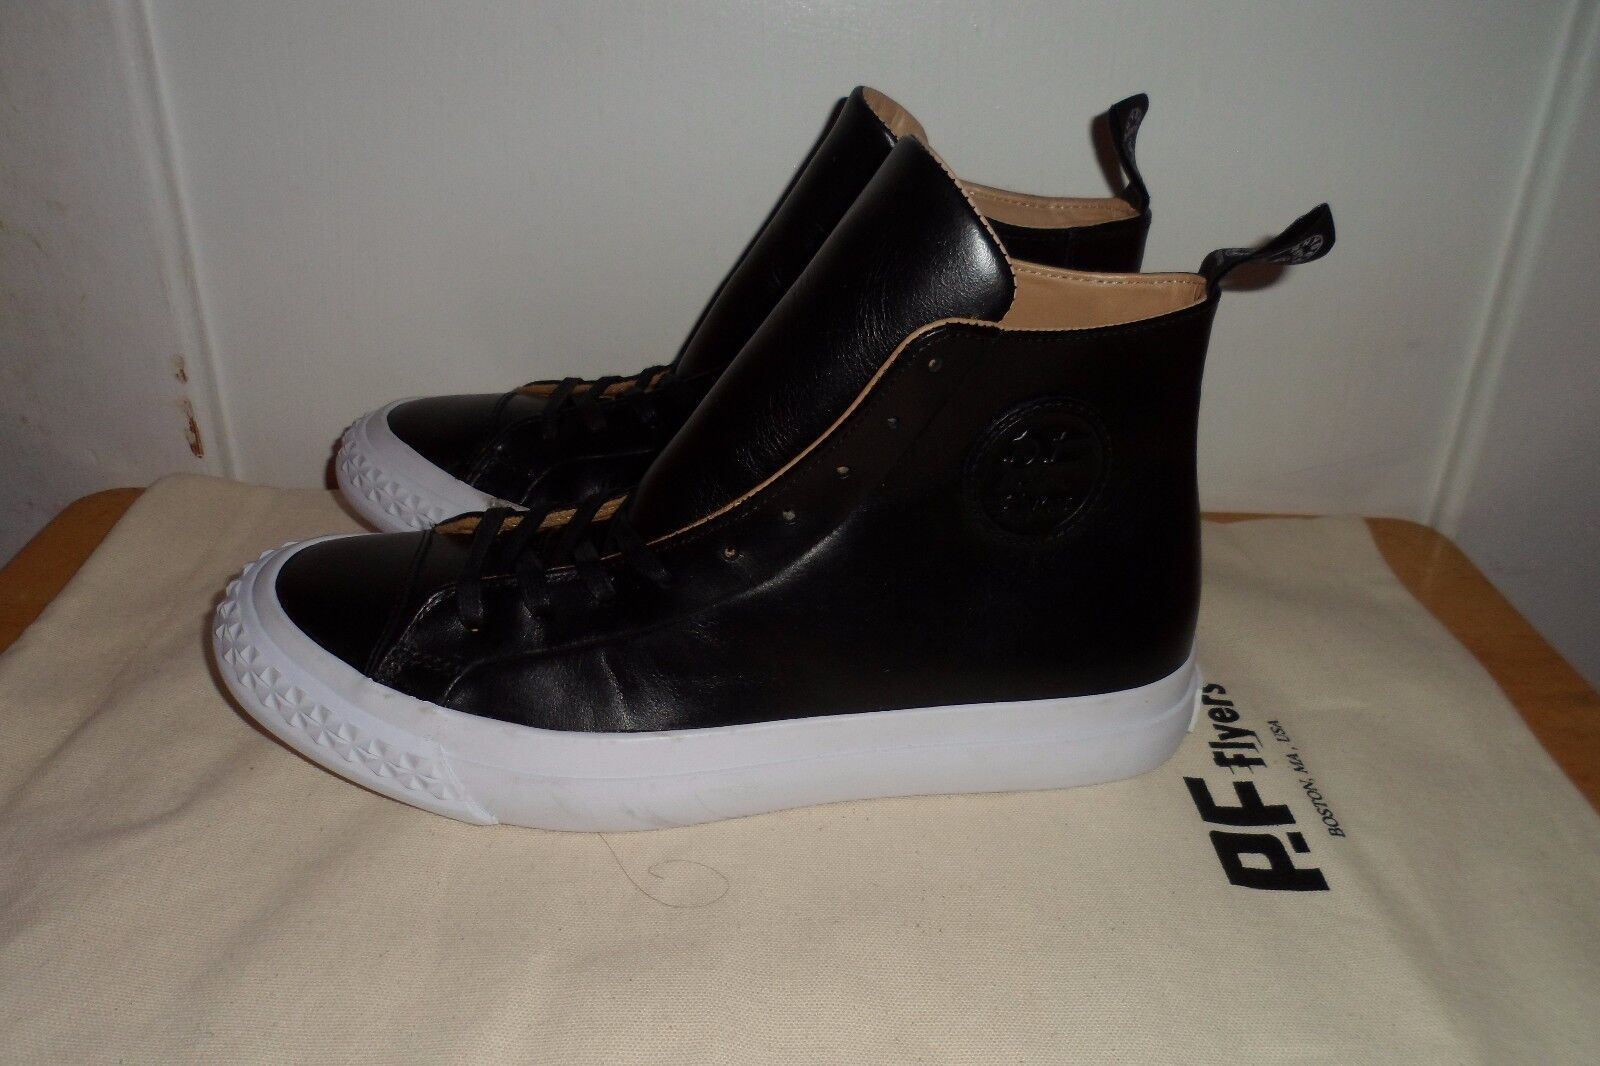 MUST SEE WORN 1X $160.00 PF FLYERS TODD SNYDER RAMBLER M HI BLACK MEN 7.5 M RAMBLER 01fb88